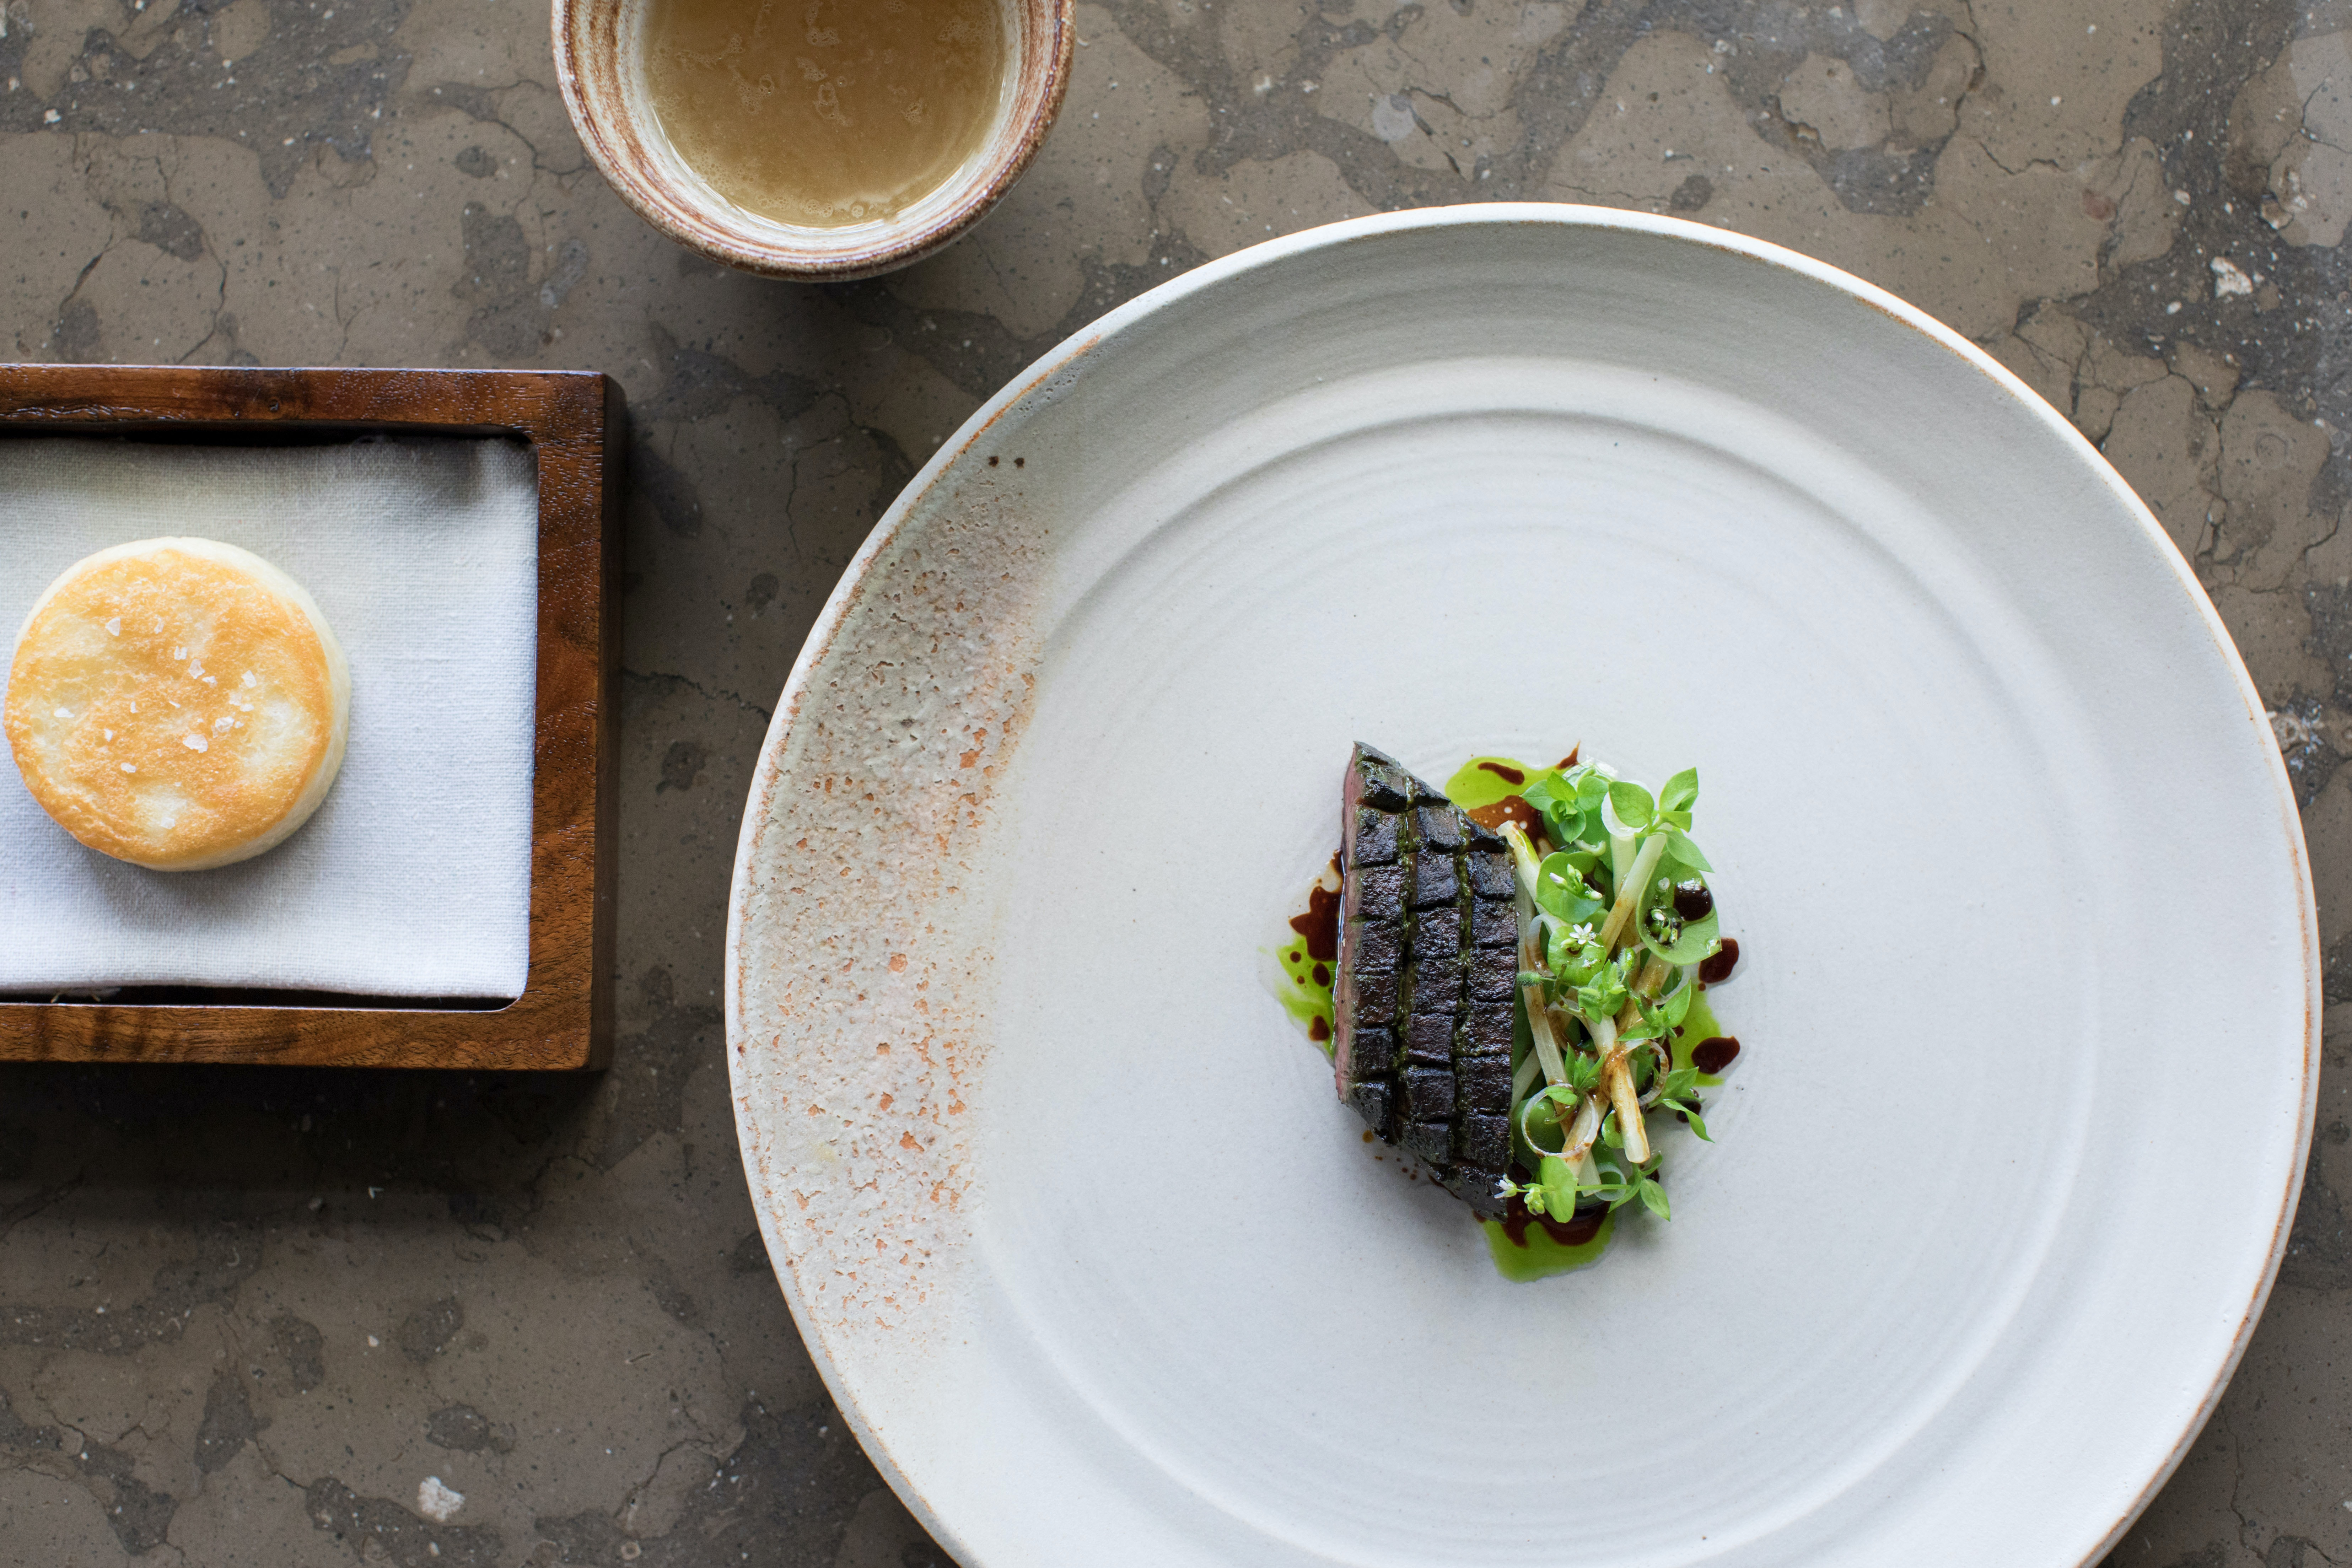 The Restaurant at Meadowood is one of Napa Valley's three-starred Michelin restaurants.